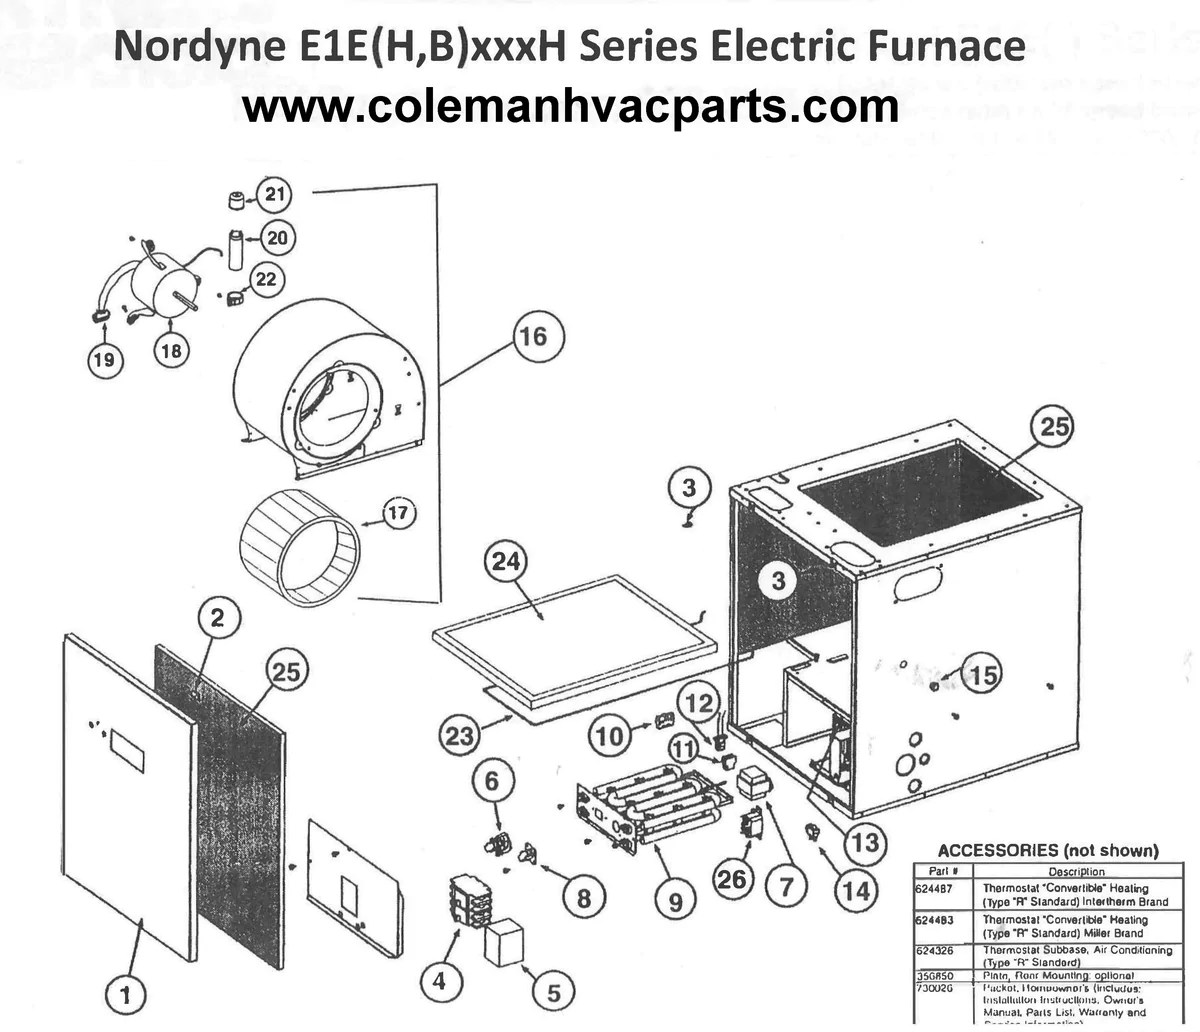 ruud furnace parts diagram wiring diagram expert york furnace parts diagram [ 1199 x 1032 Pixel ]